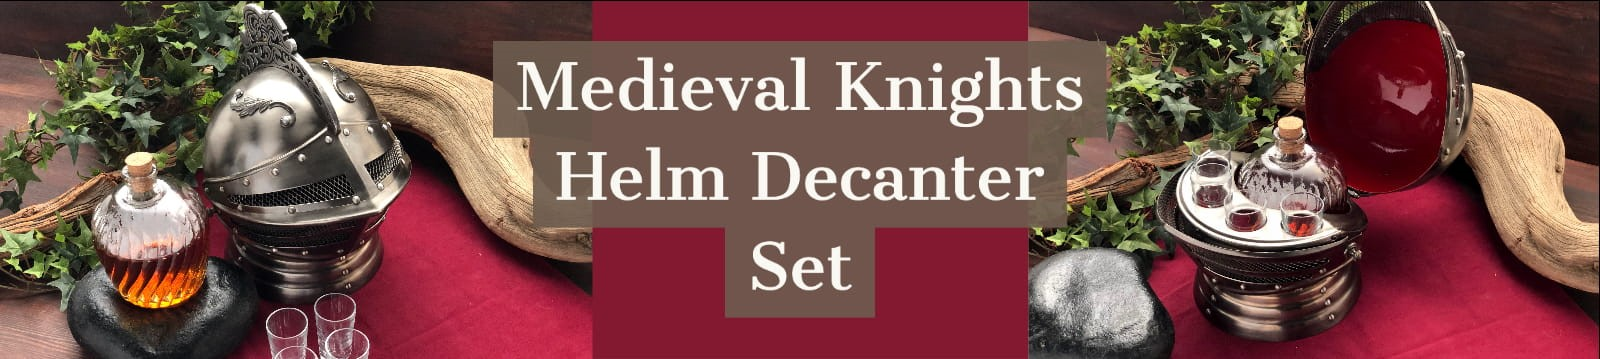 New Medieval Knights Helm Decanter Set with Glass Carafe and shot glasses